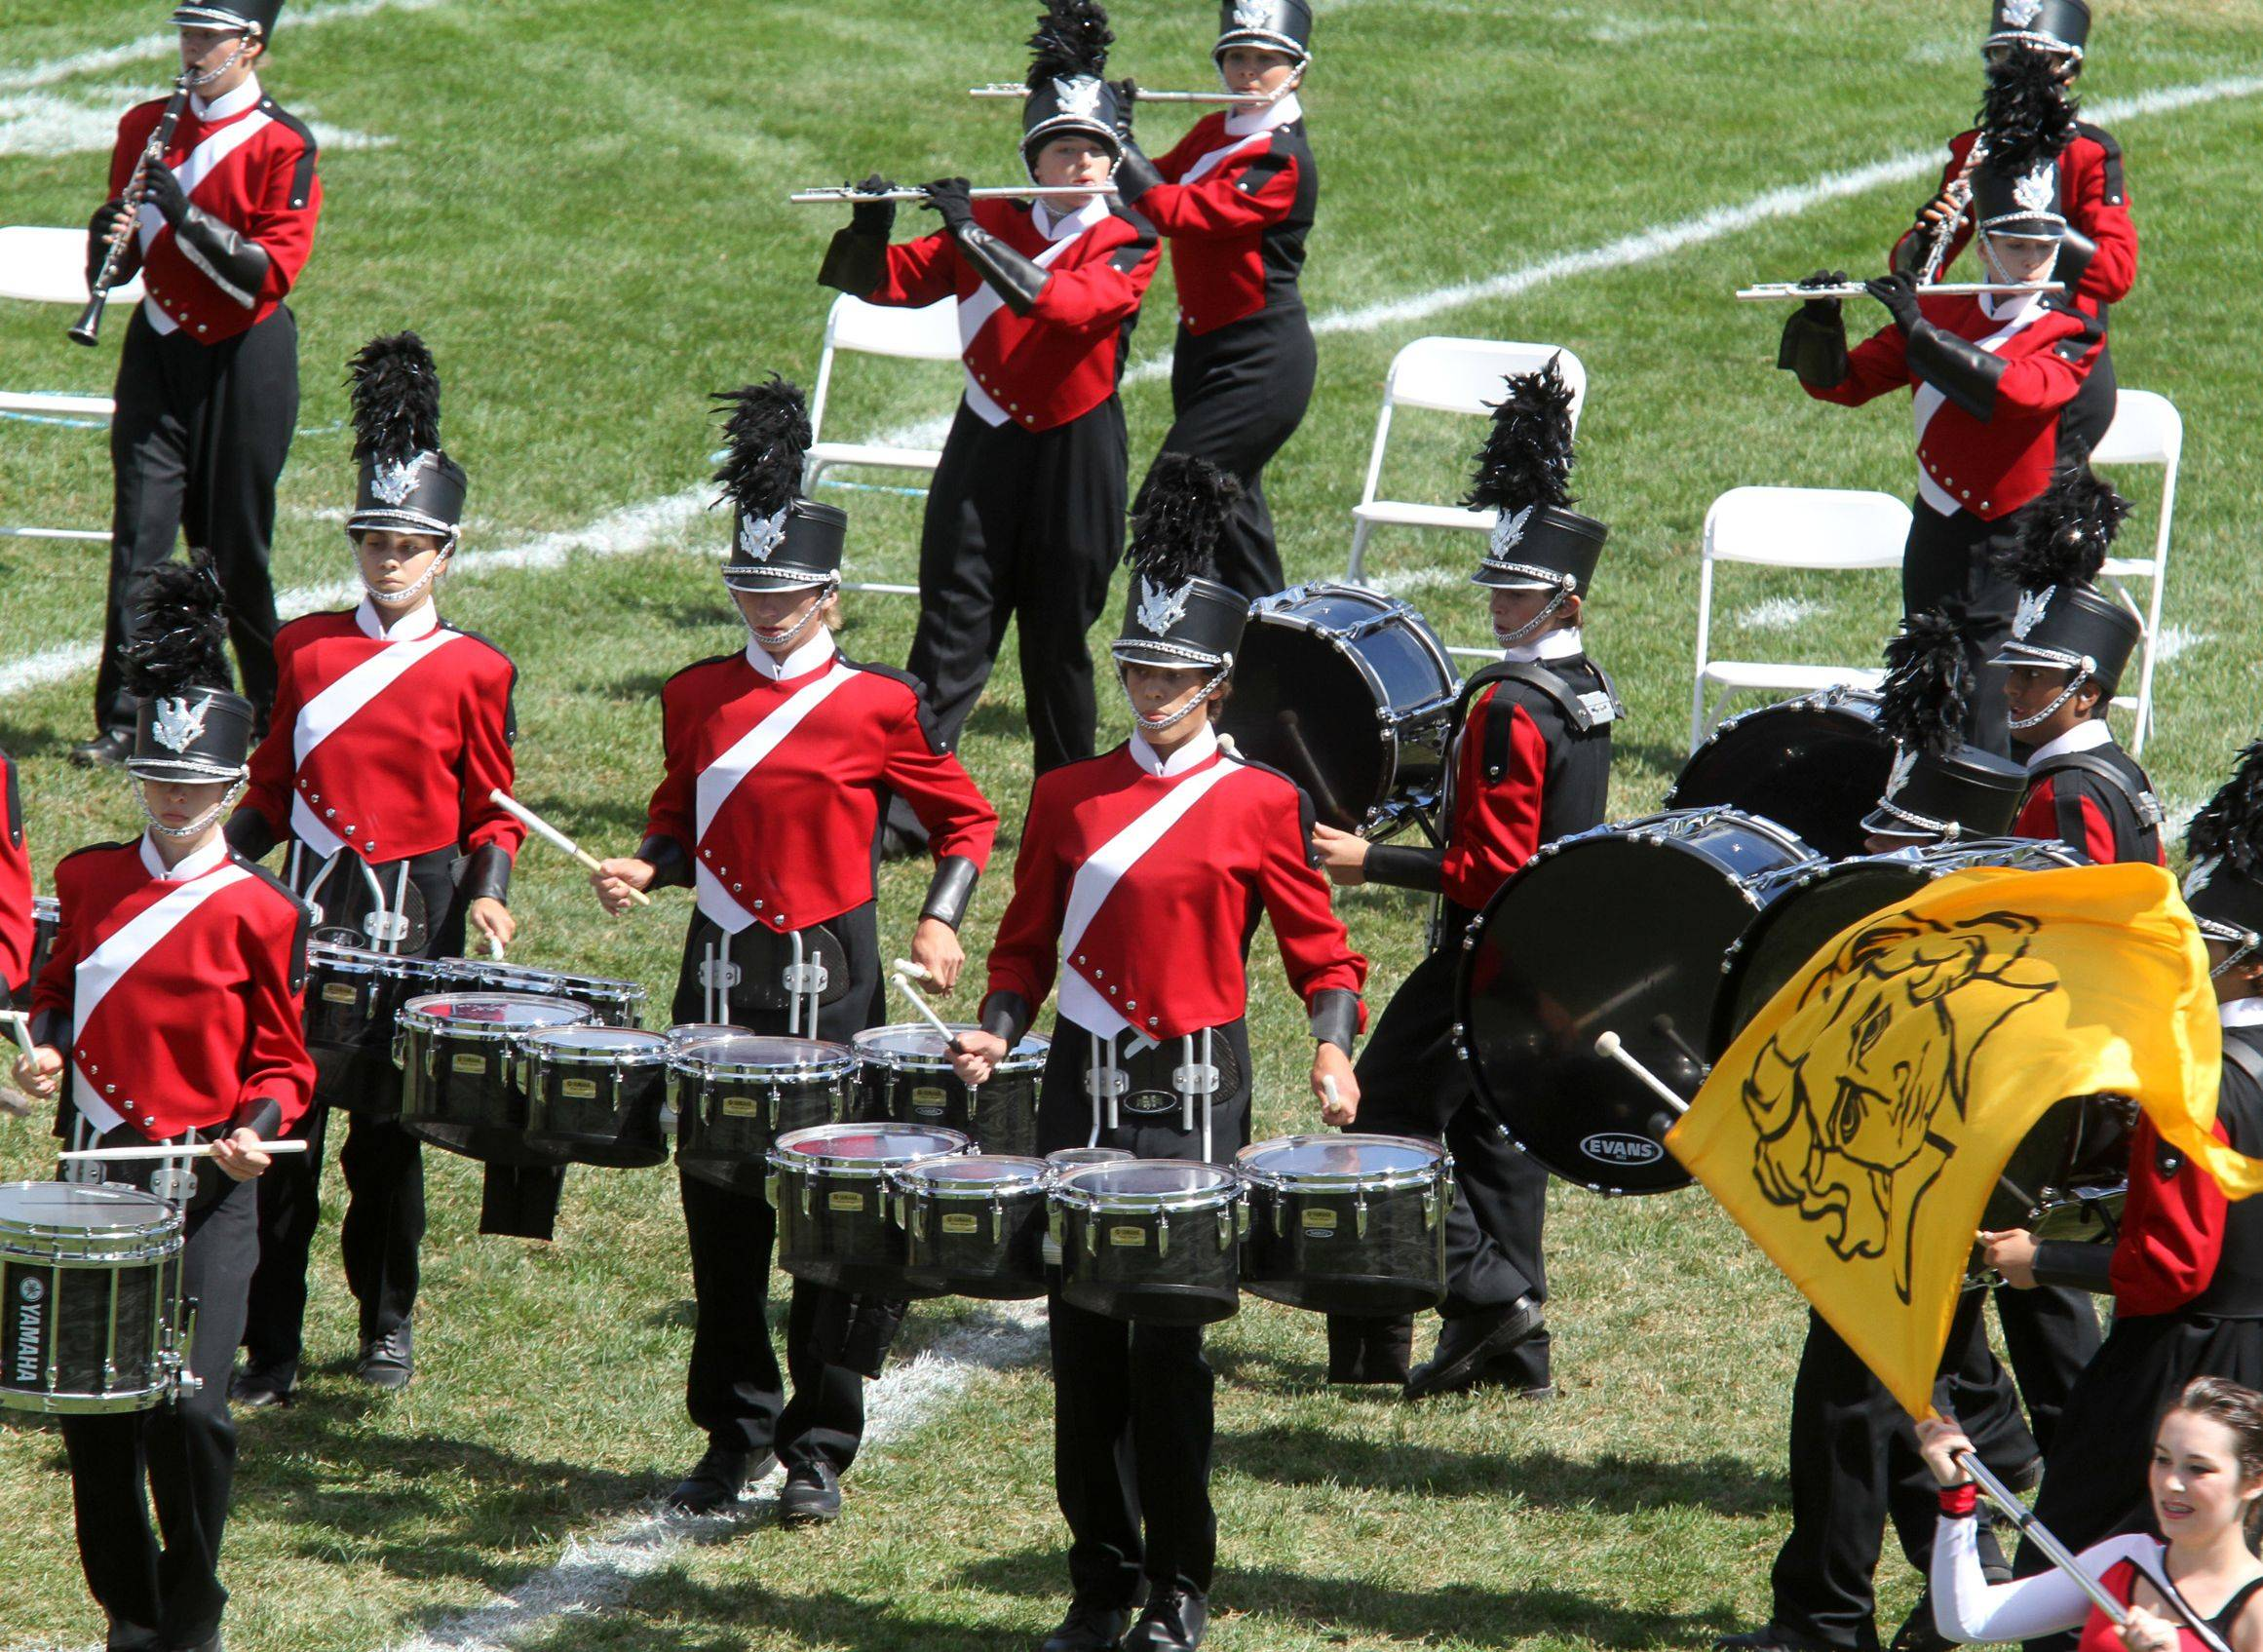 Naperville Central High School competes at the 34th annual Lancer Joust Marching Band Competition at Lake Park High School, West Campus, in Roselle on Saturday.